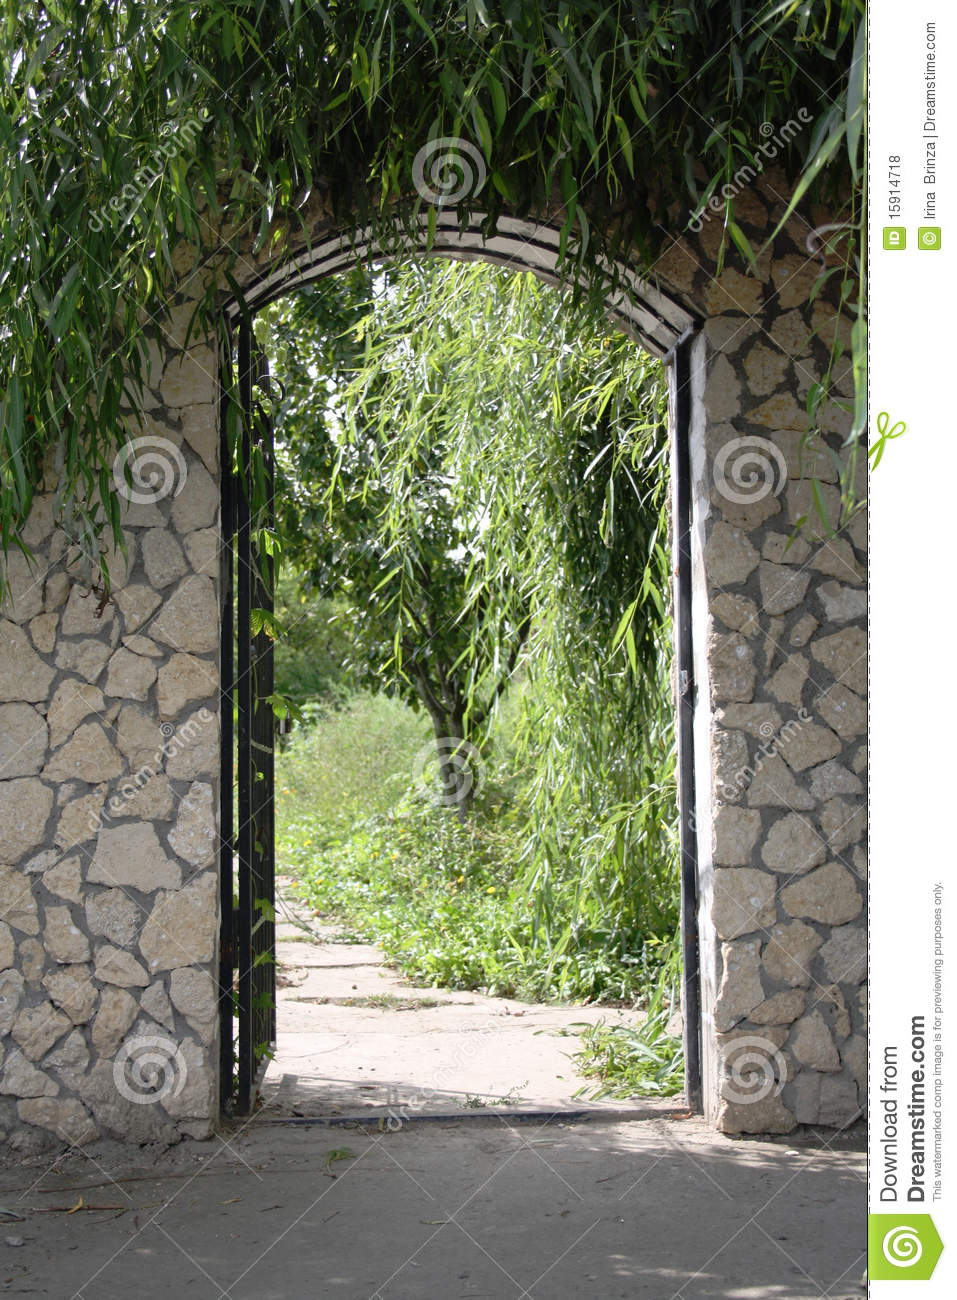 open the gate to the garden stock photo image of herbs path 15914718